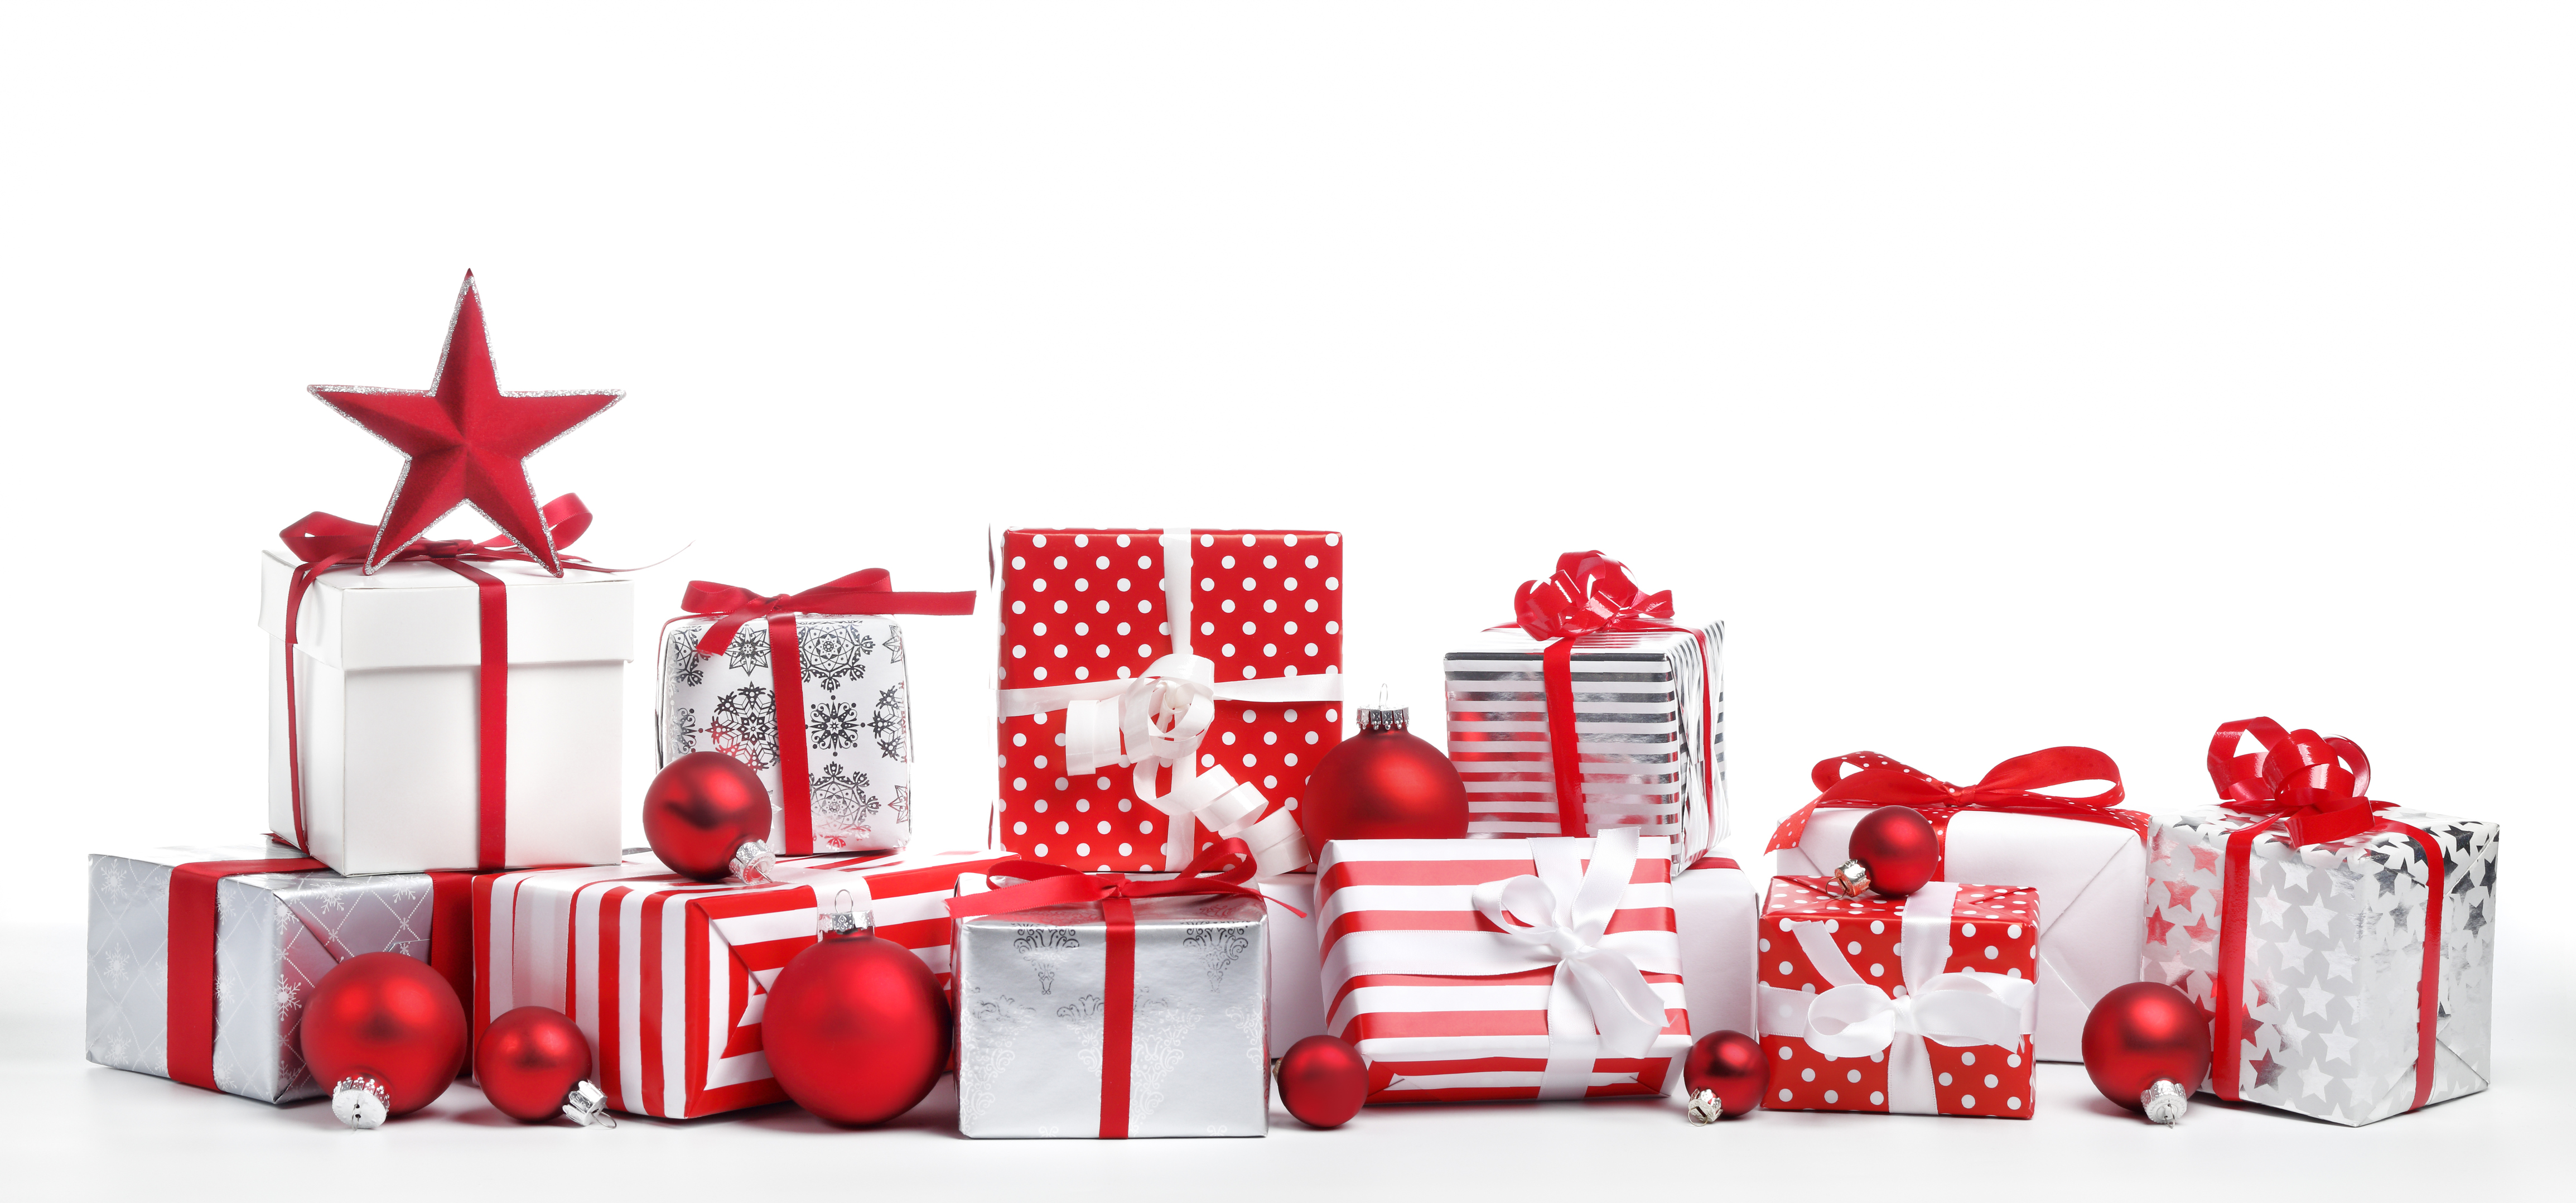 Christmas gifts - iShop Cloverdale